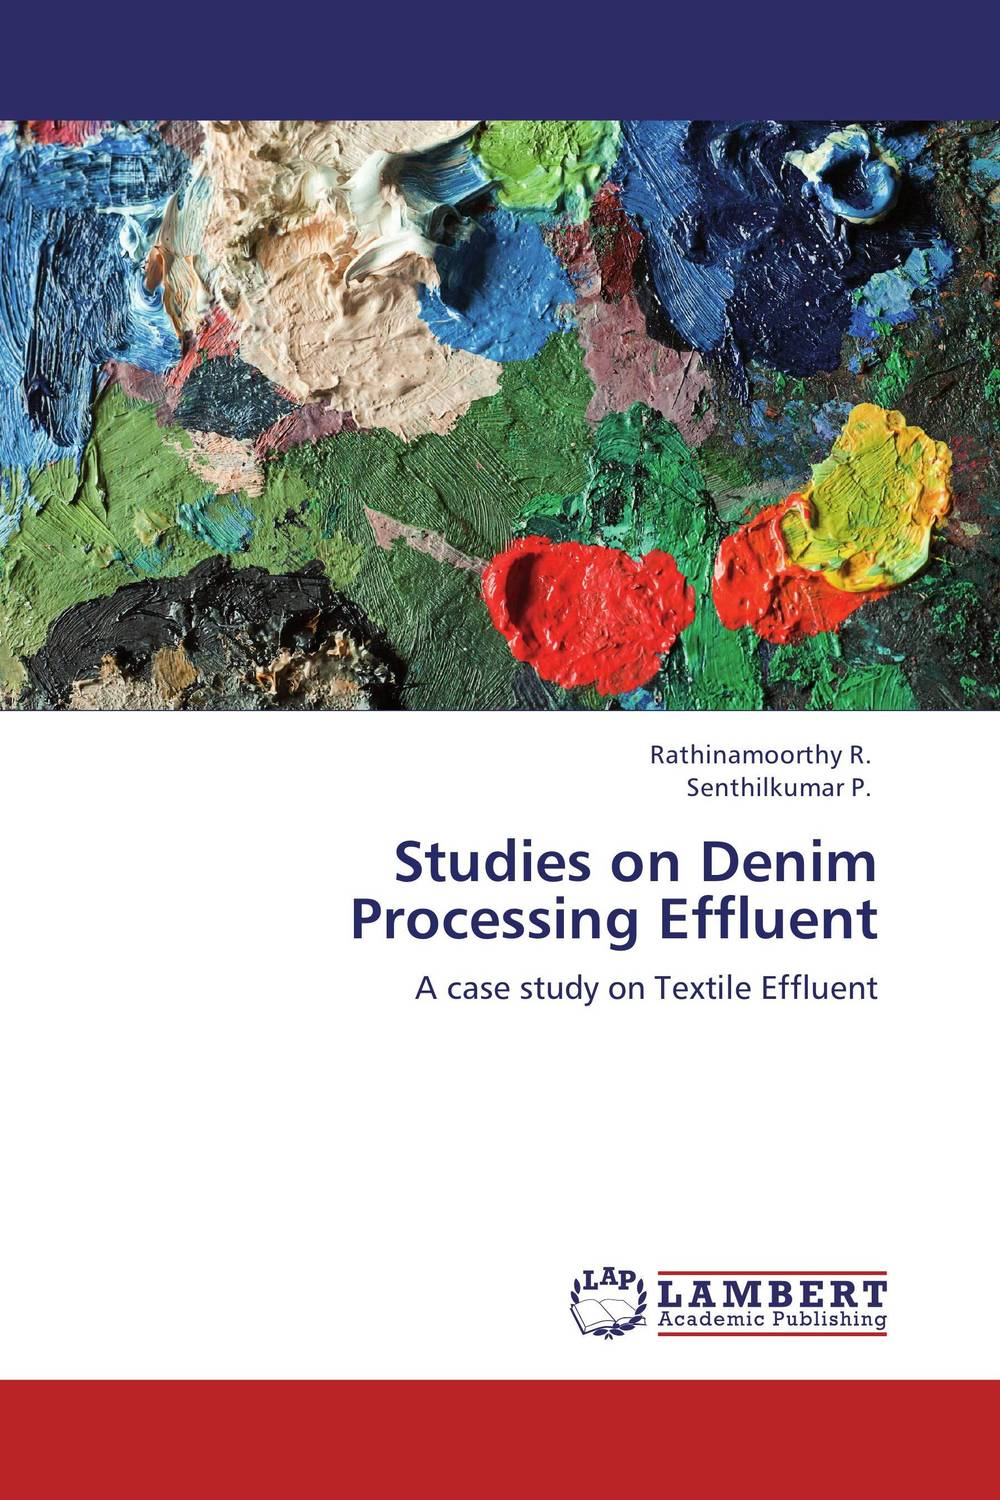 Studies on Denim Processing Effluent